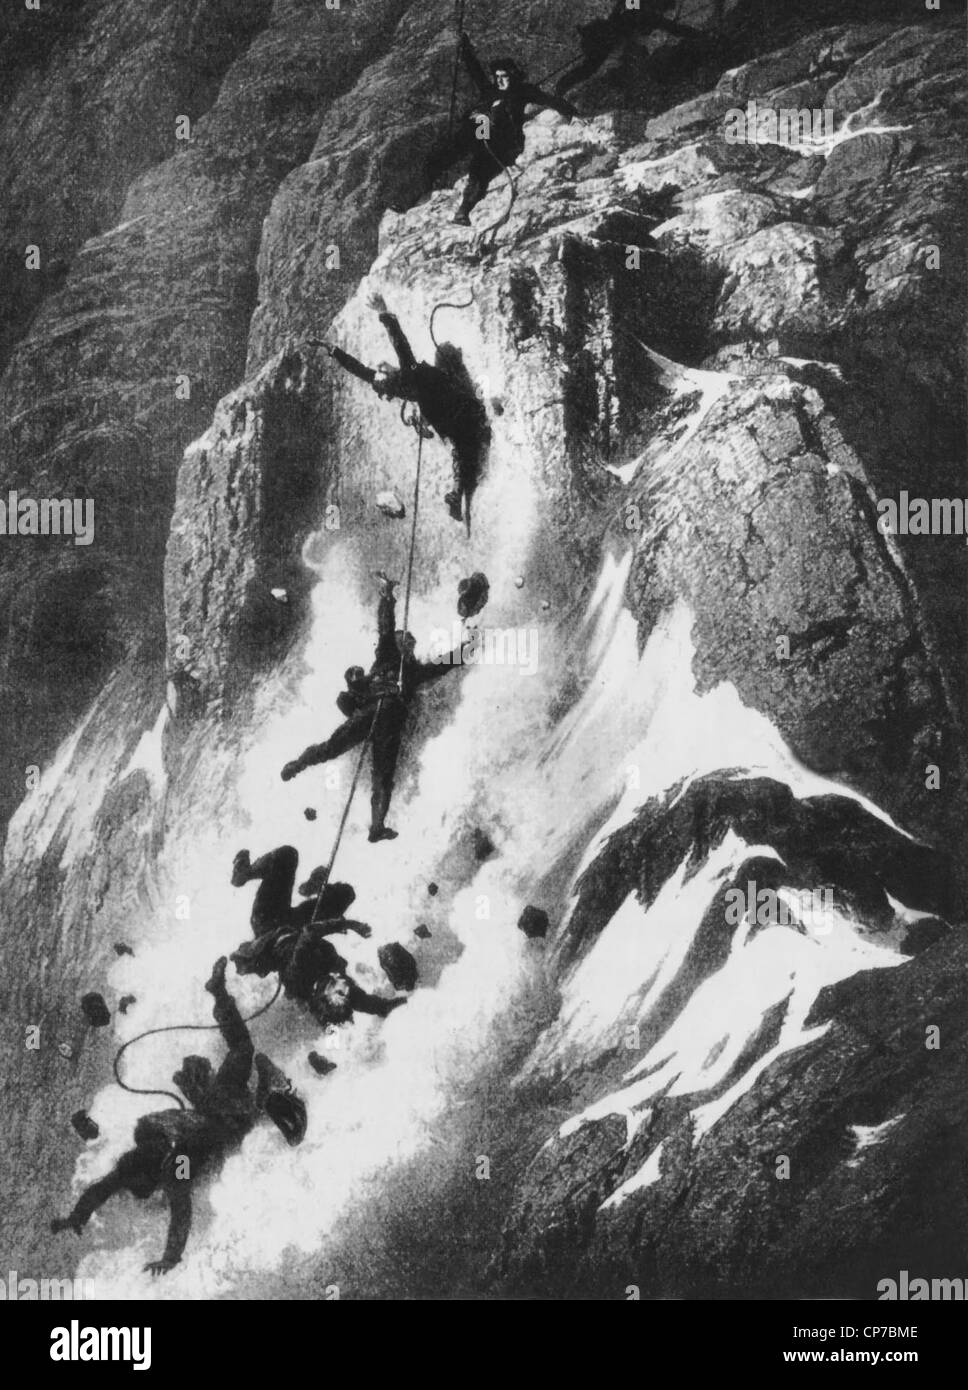 Disaster strikes just after the first ascent of the Matterhorn, drawn by artist Gustave Doré in 1865. Stock Photo